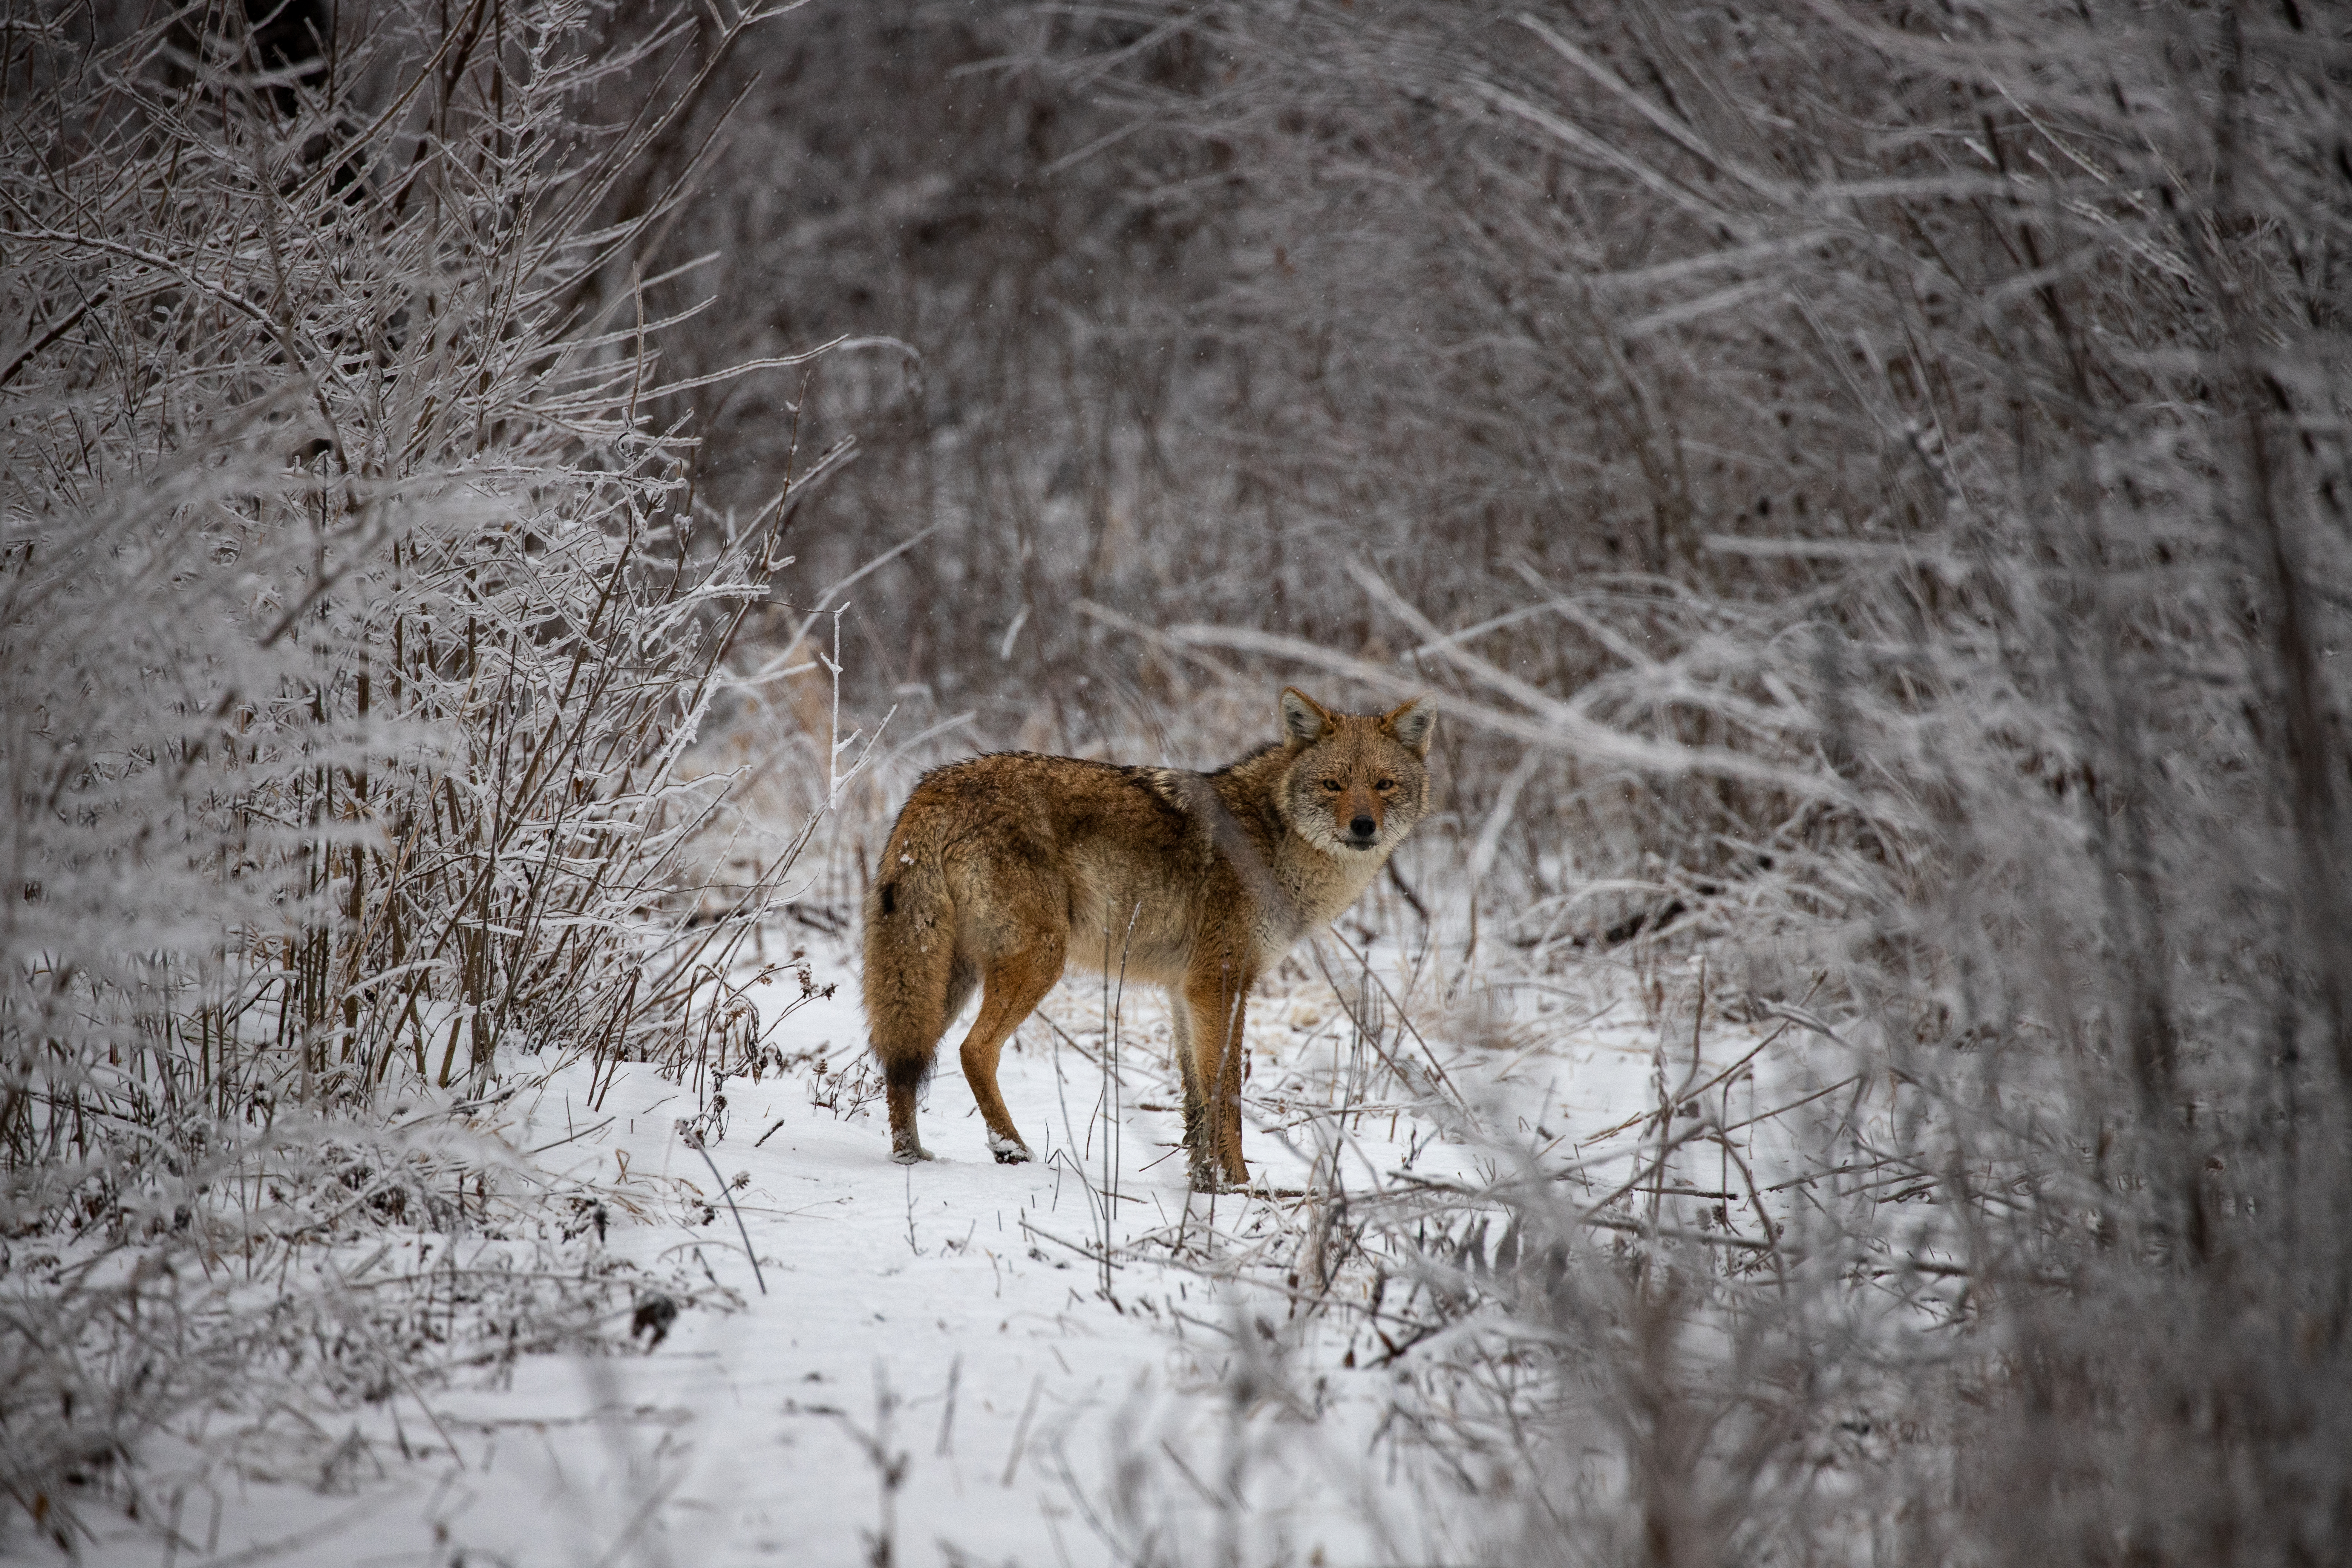 (2/3) A coyote in the bushes looks for protection from the wind in an icing rainstorm. nature, wildlife, animal, mammal, coyote, winter, snow, woods, tree, plant Photo: Adrien Hourlier